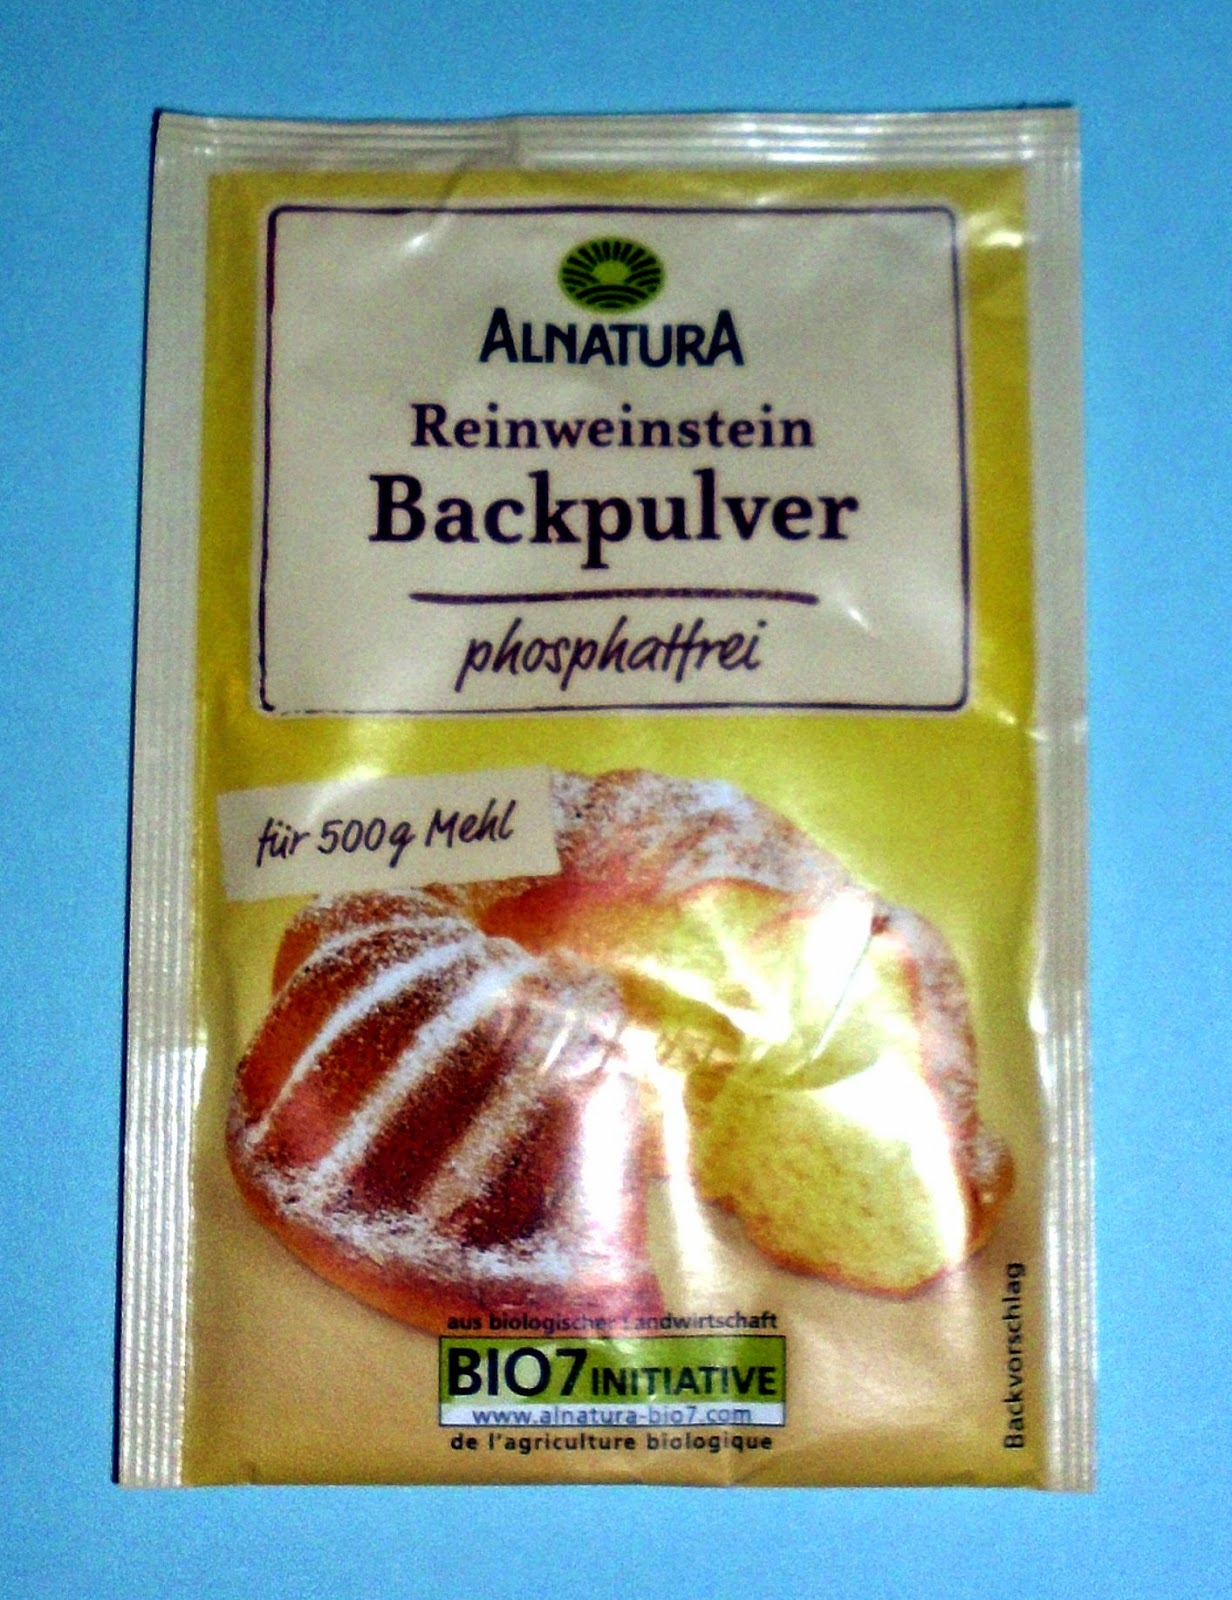 Natron Zum Backen Alternative Topping Queen: Treibmittel Zum Backen - Damit Der Kuchen